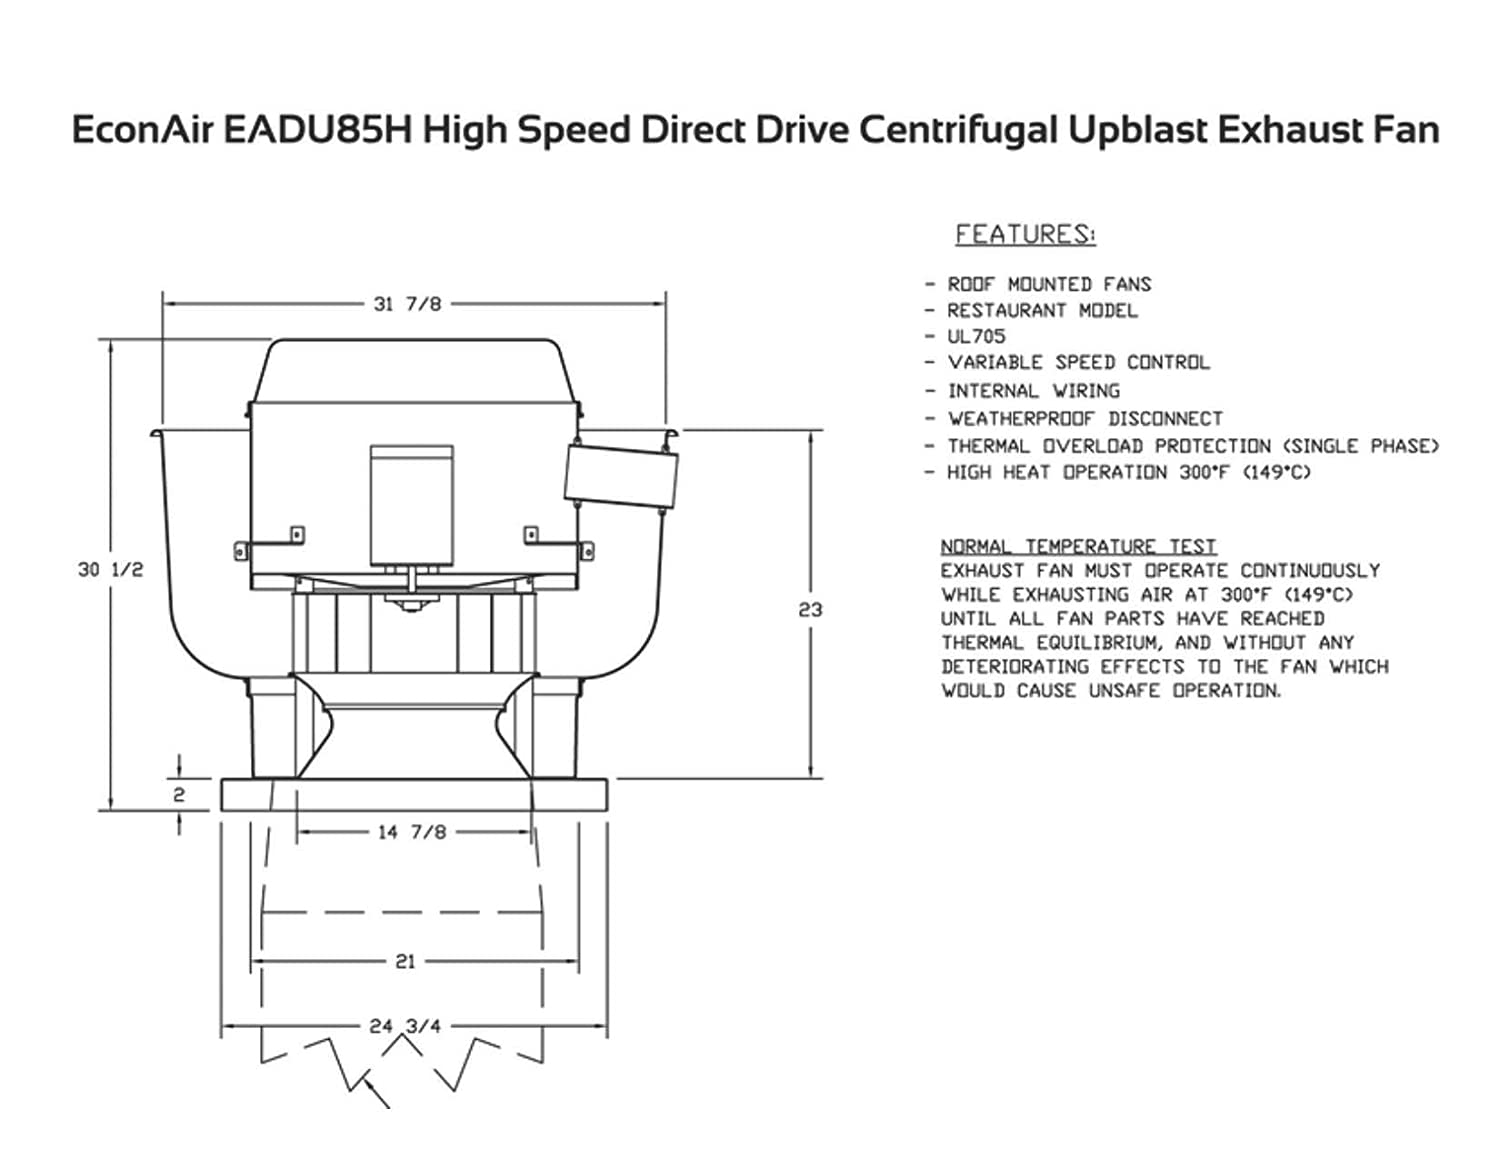 2200 Cfm Direct Drive Upblast Restaurant Exhaust Fan With 1575 Centrifugal Wiring Diagram Wheel Motor 75 Hp 115 V Single Phase